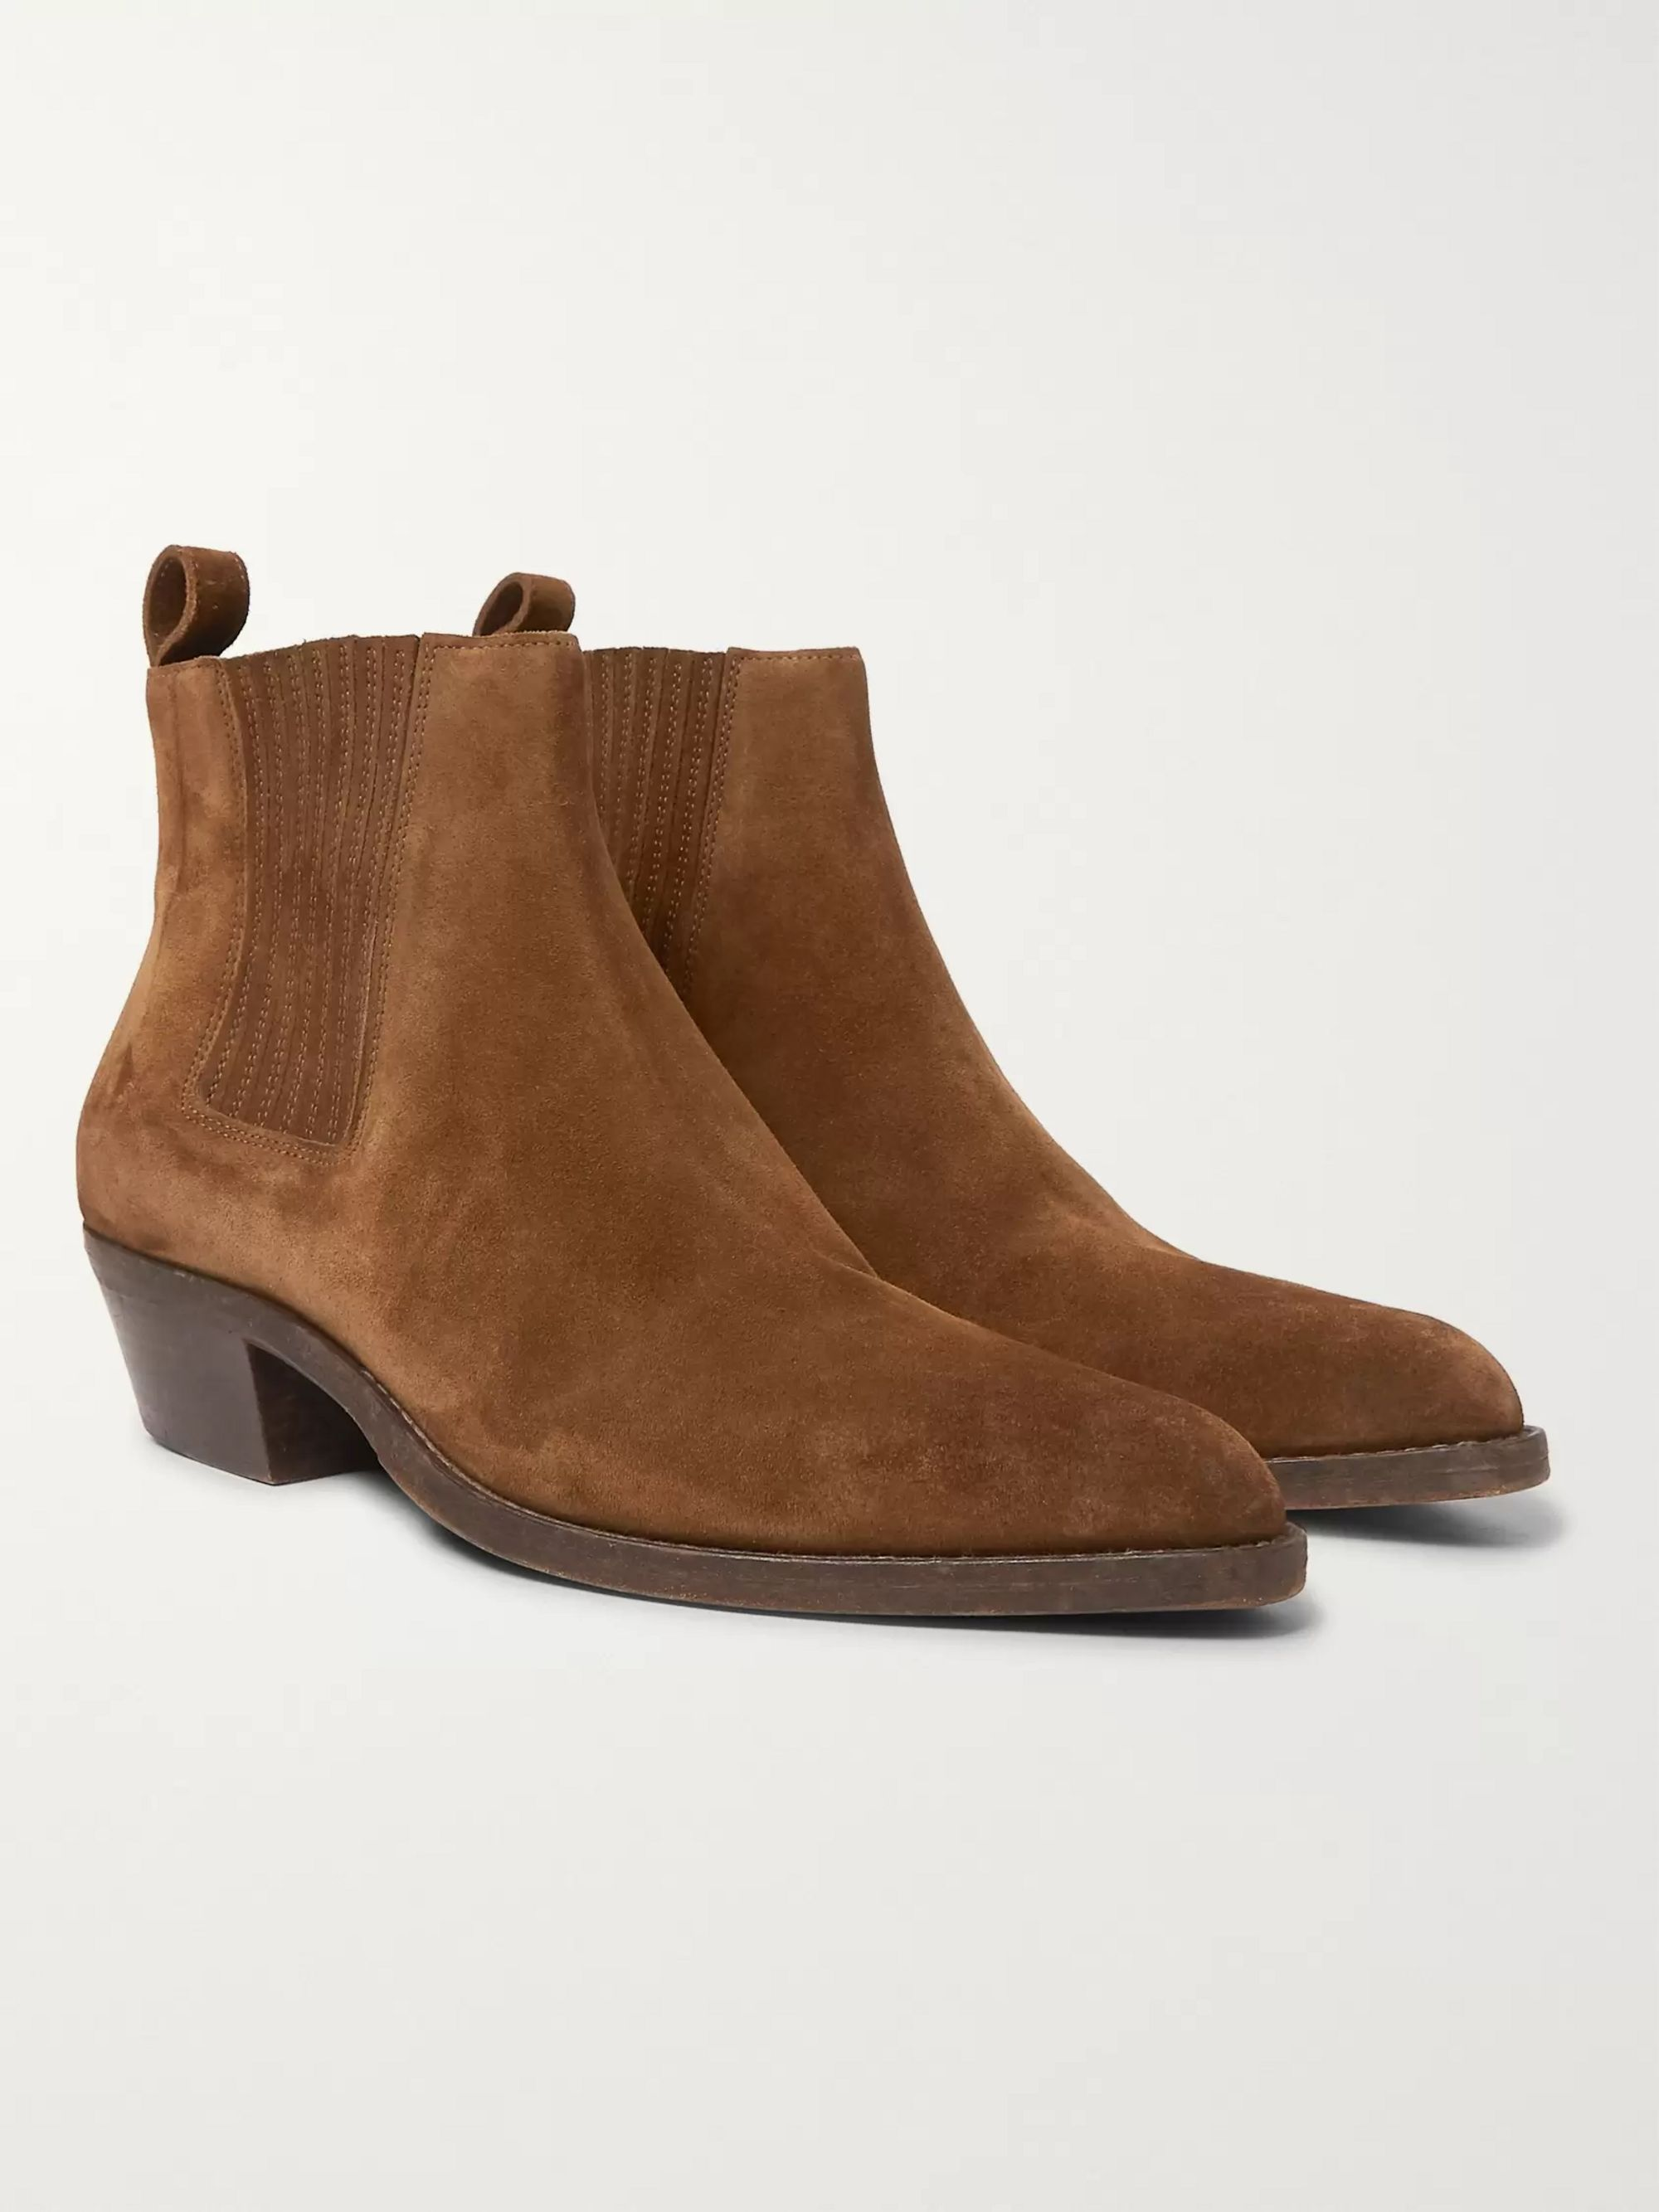 SAINT LAURENT Dakota Brushed-Suede Chelsea Boots